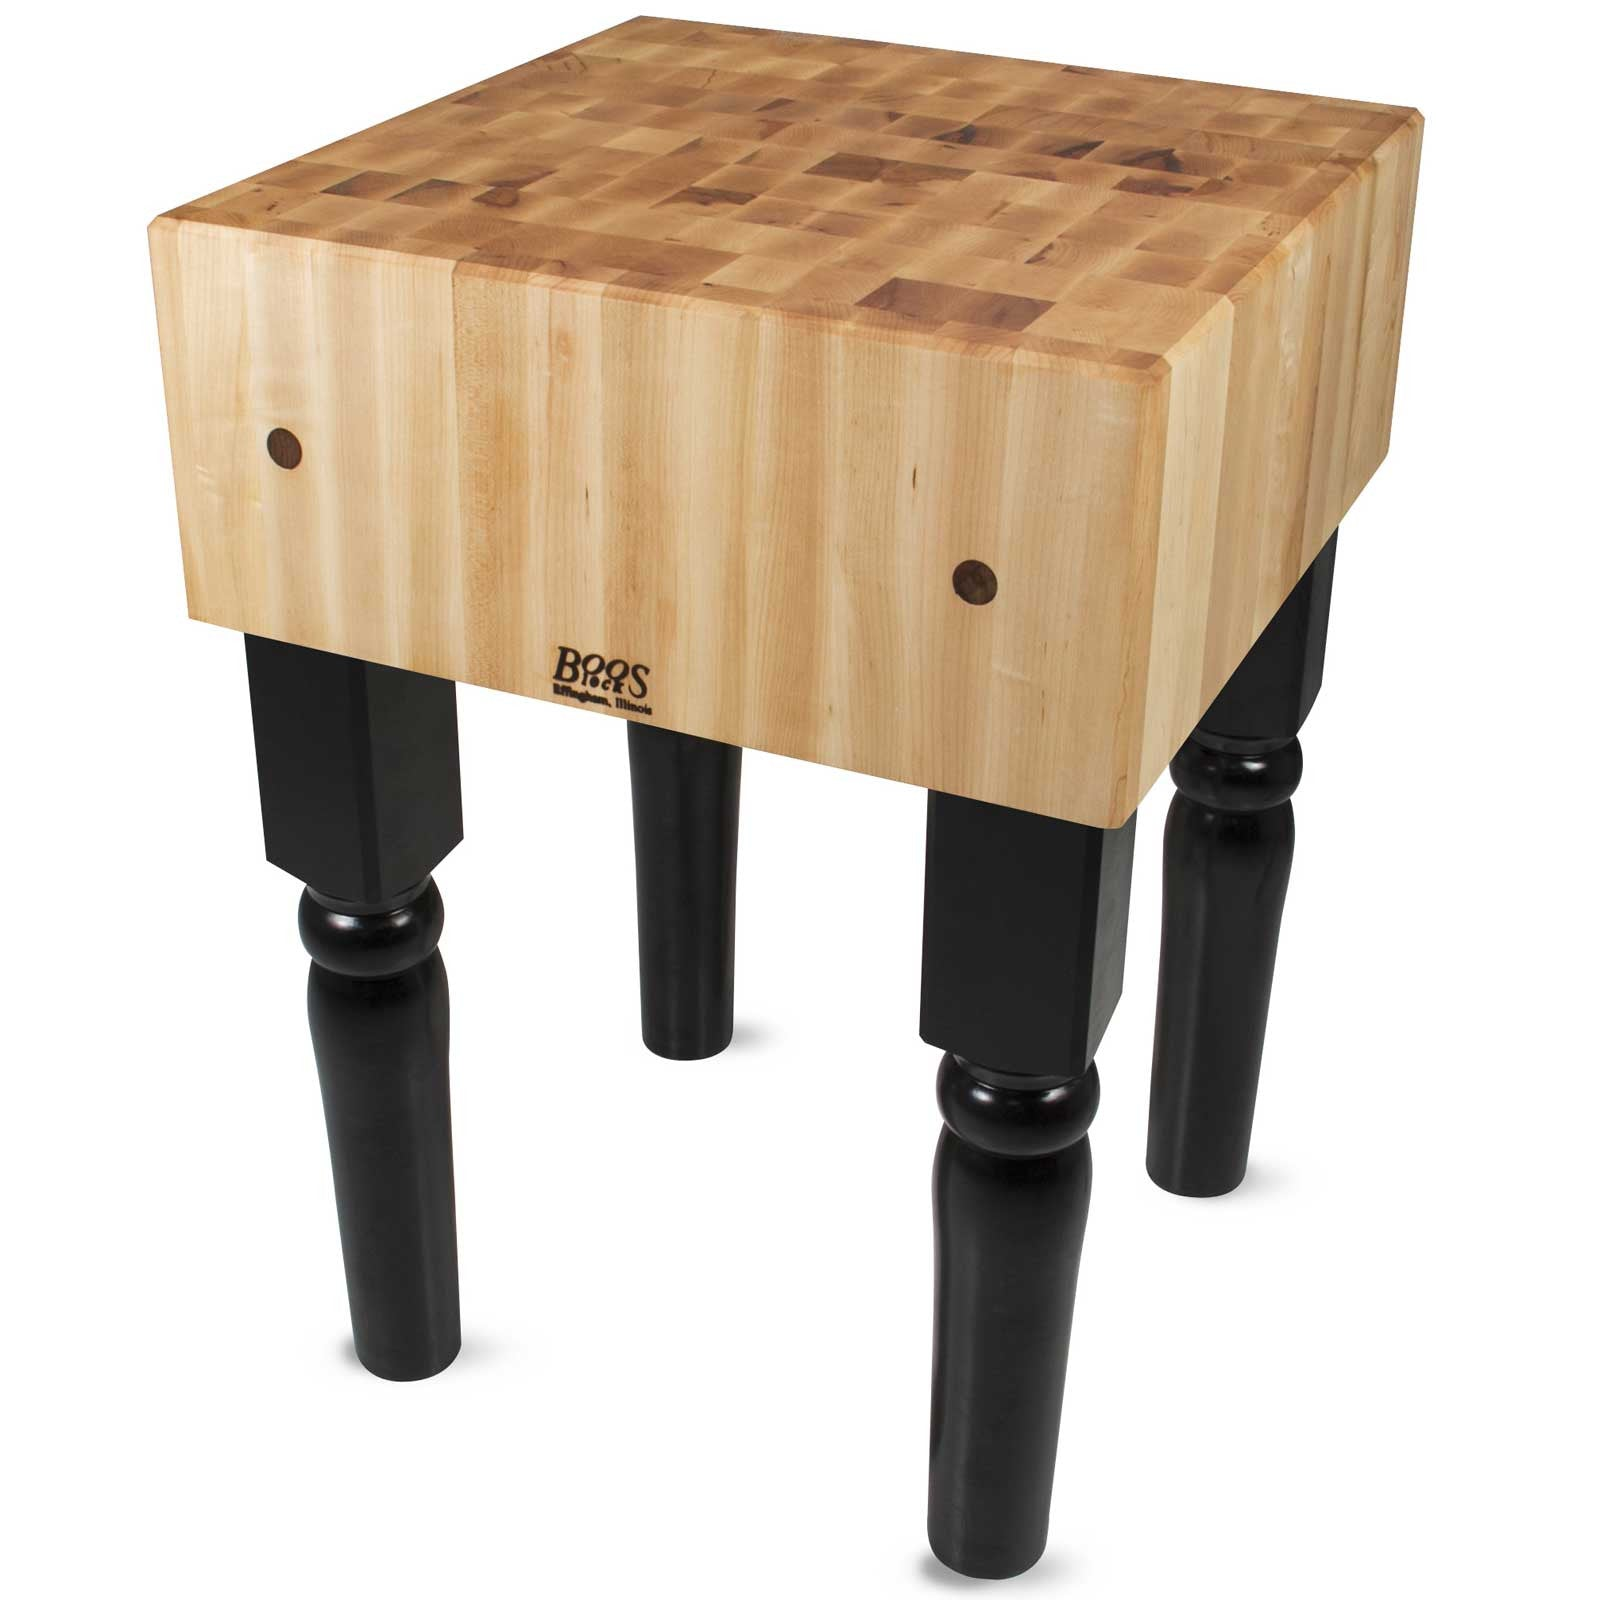 "John Boos 18"" x 18"" x 10"" Maple Top AB Butcher Block"